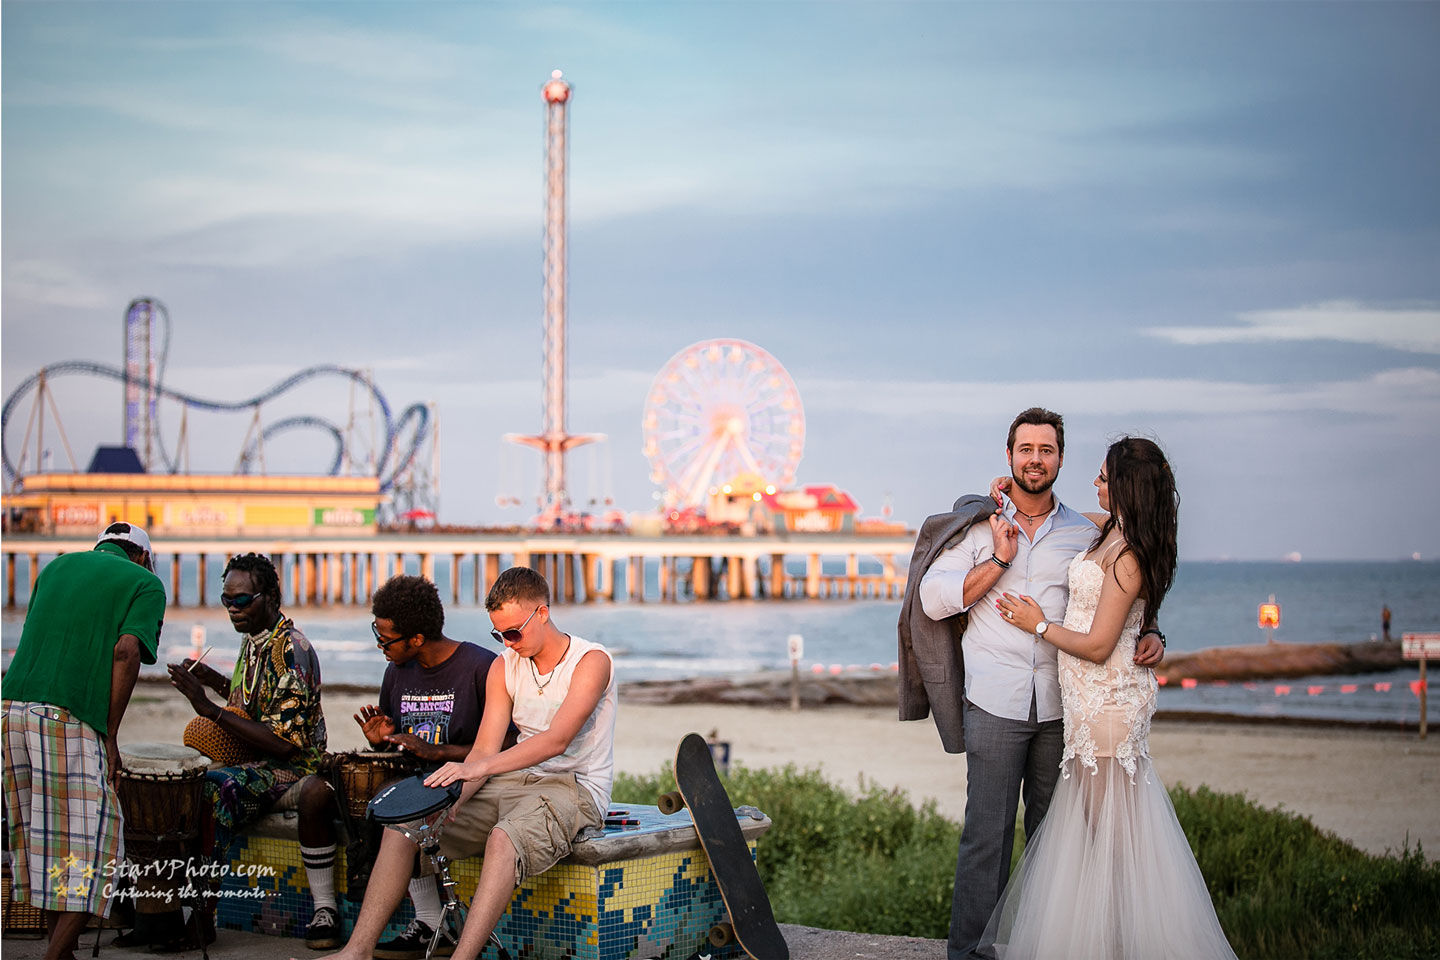 Beautiful Engagement photo on Galveston beach